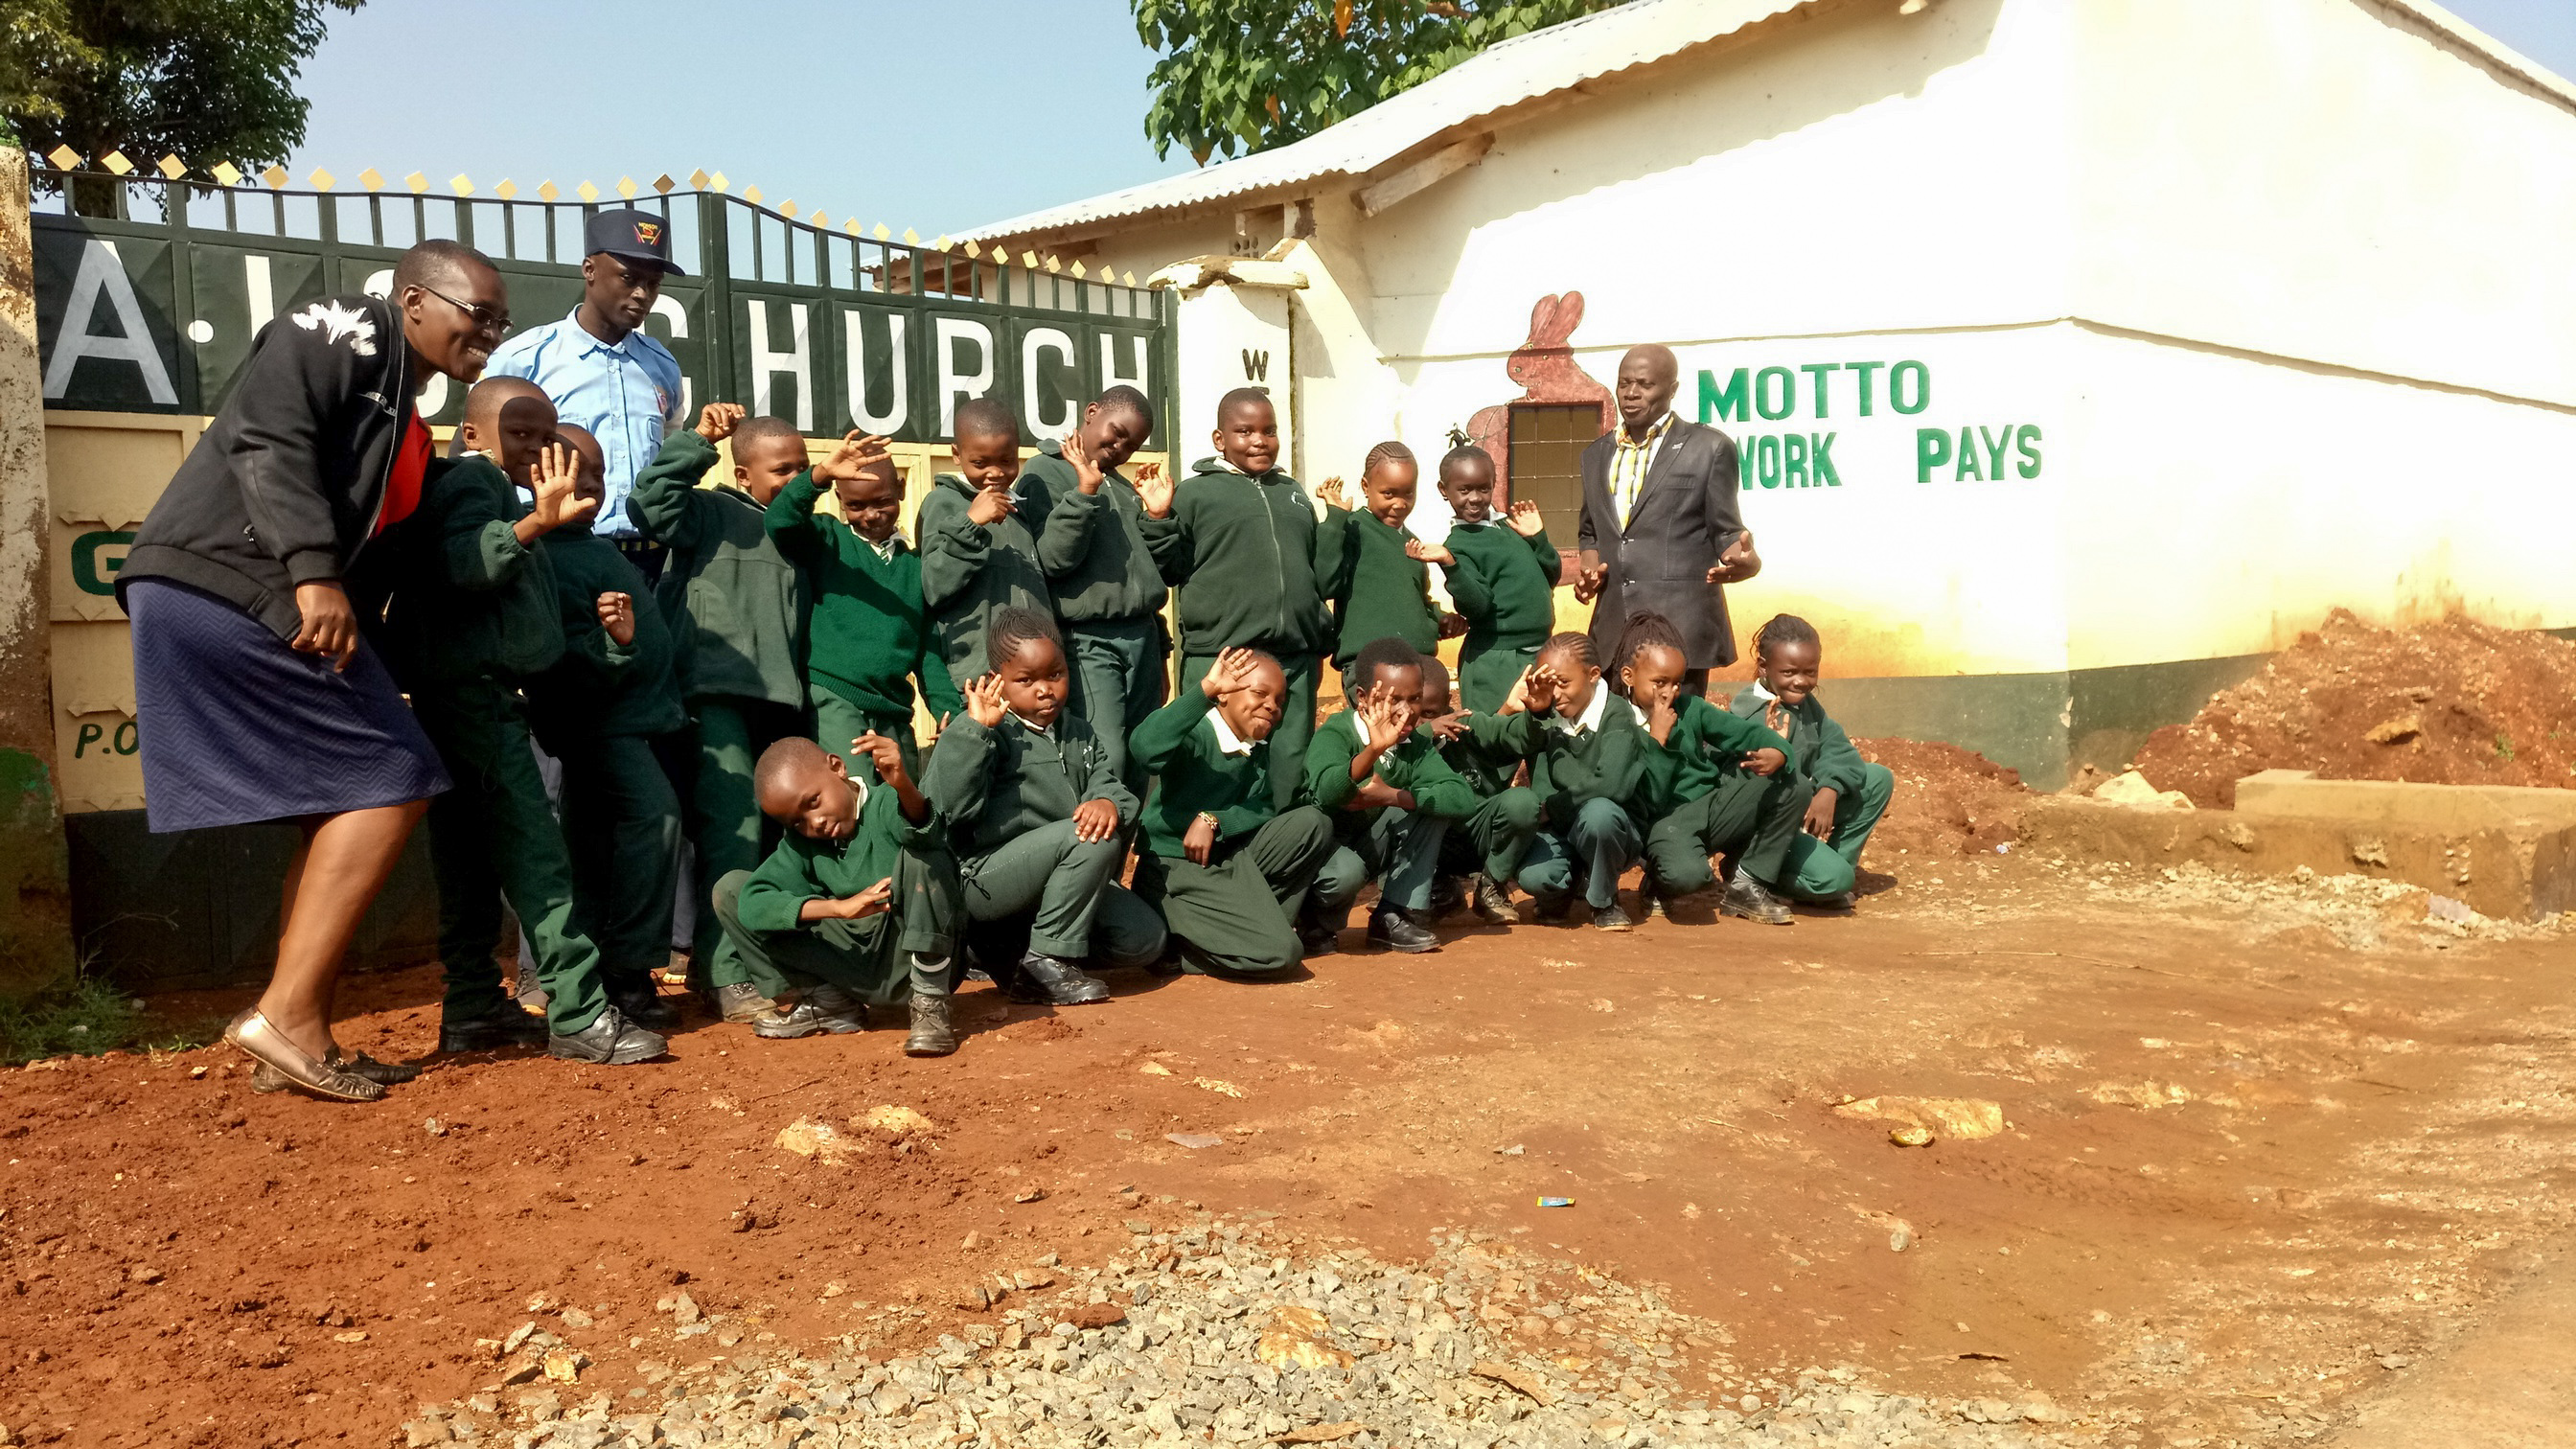 The Water Project : 2-kenya19003-our-team-members-posing-with-students-at-school-gate